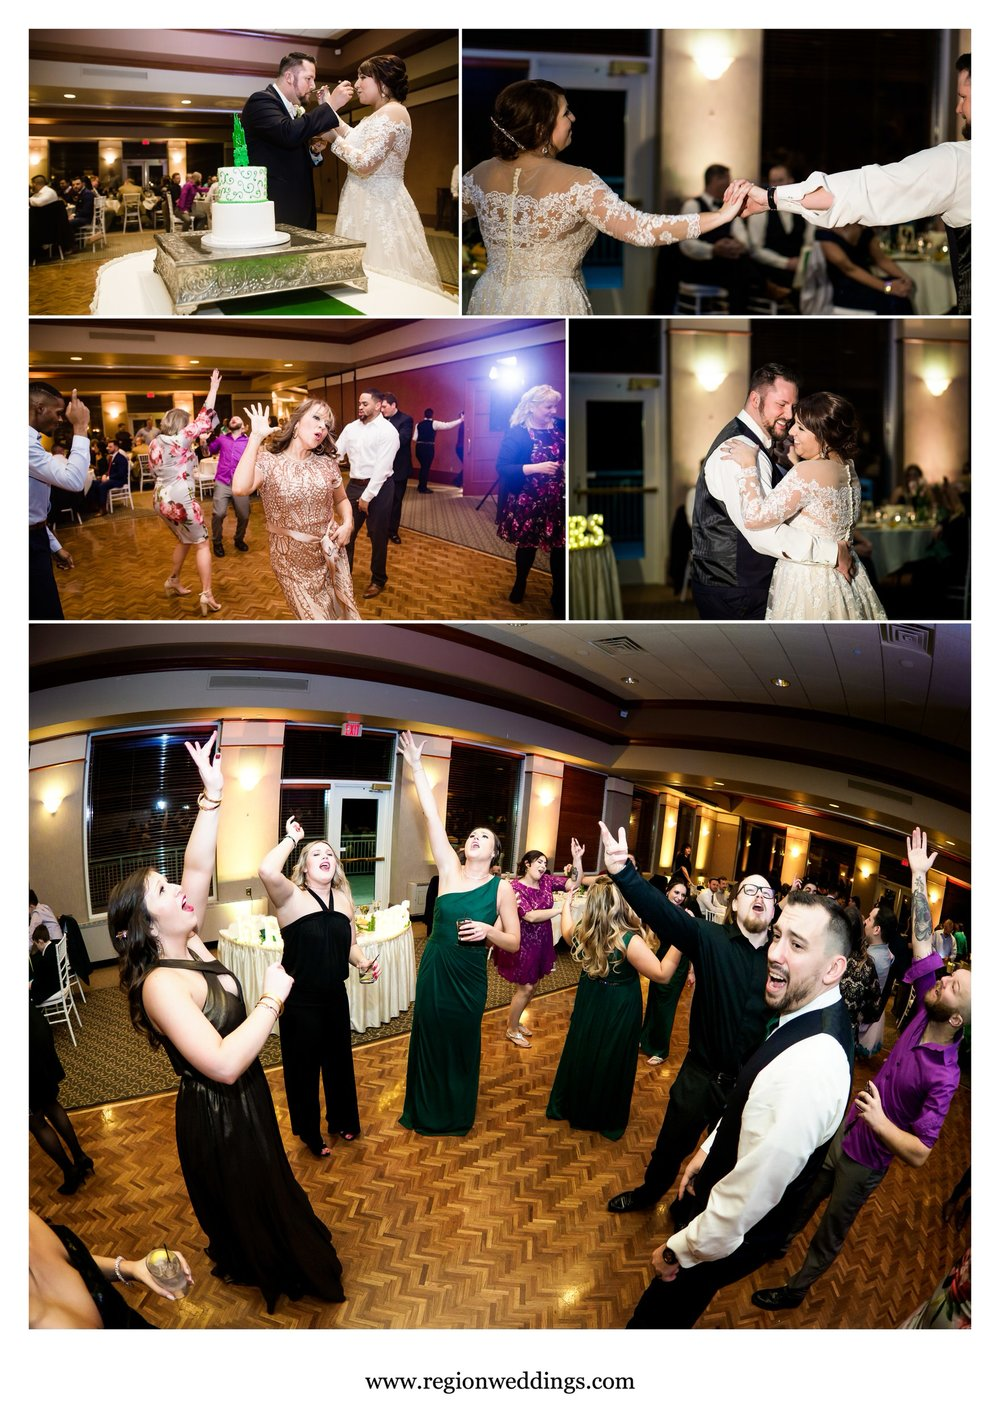 Winter wedding reception at Sand Creek golf course.